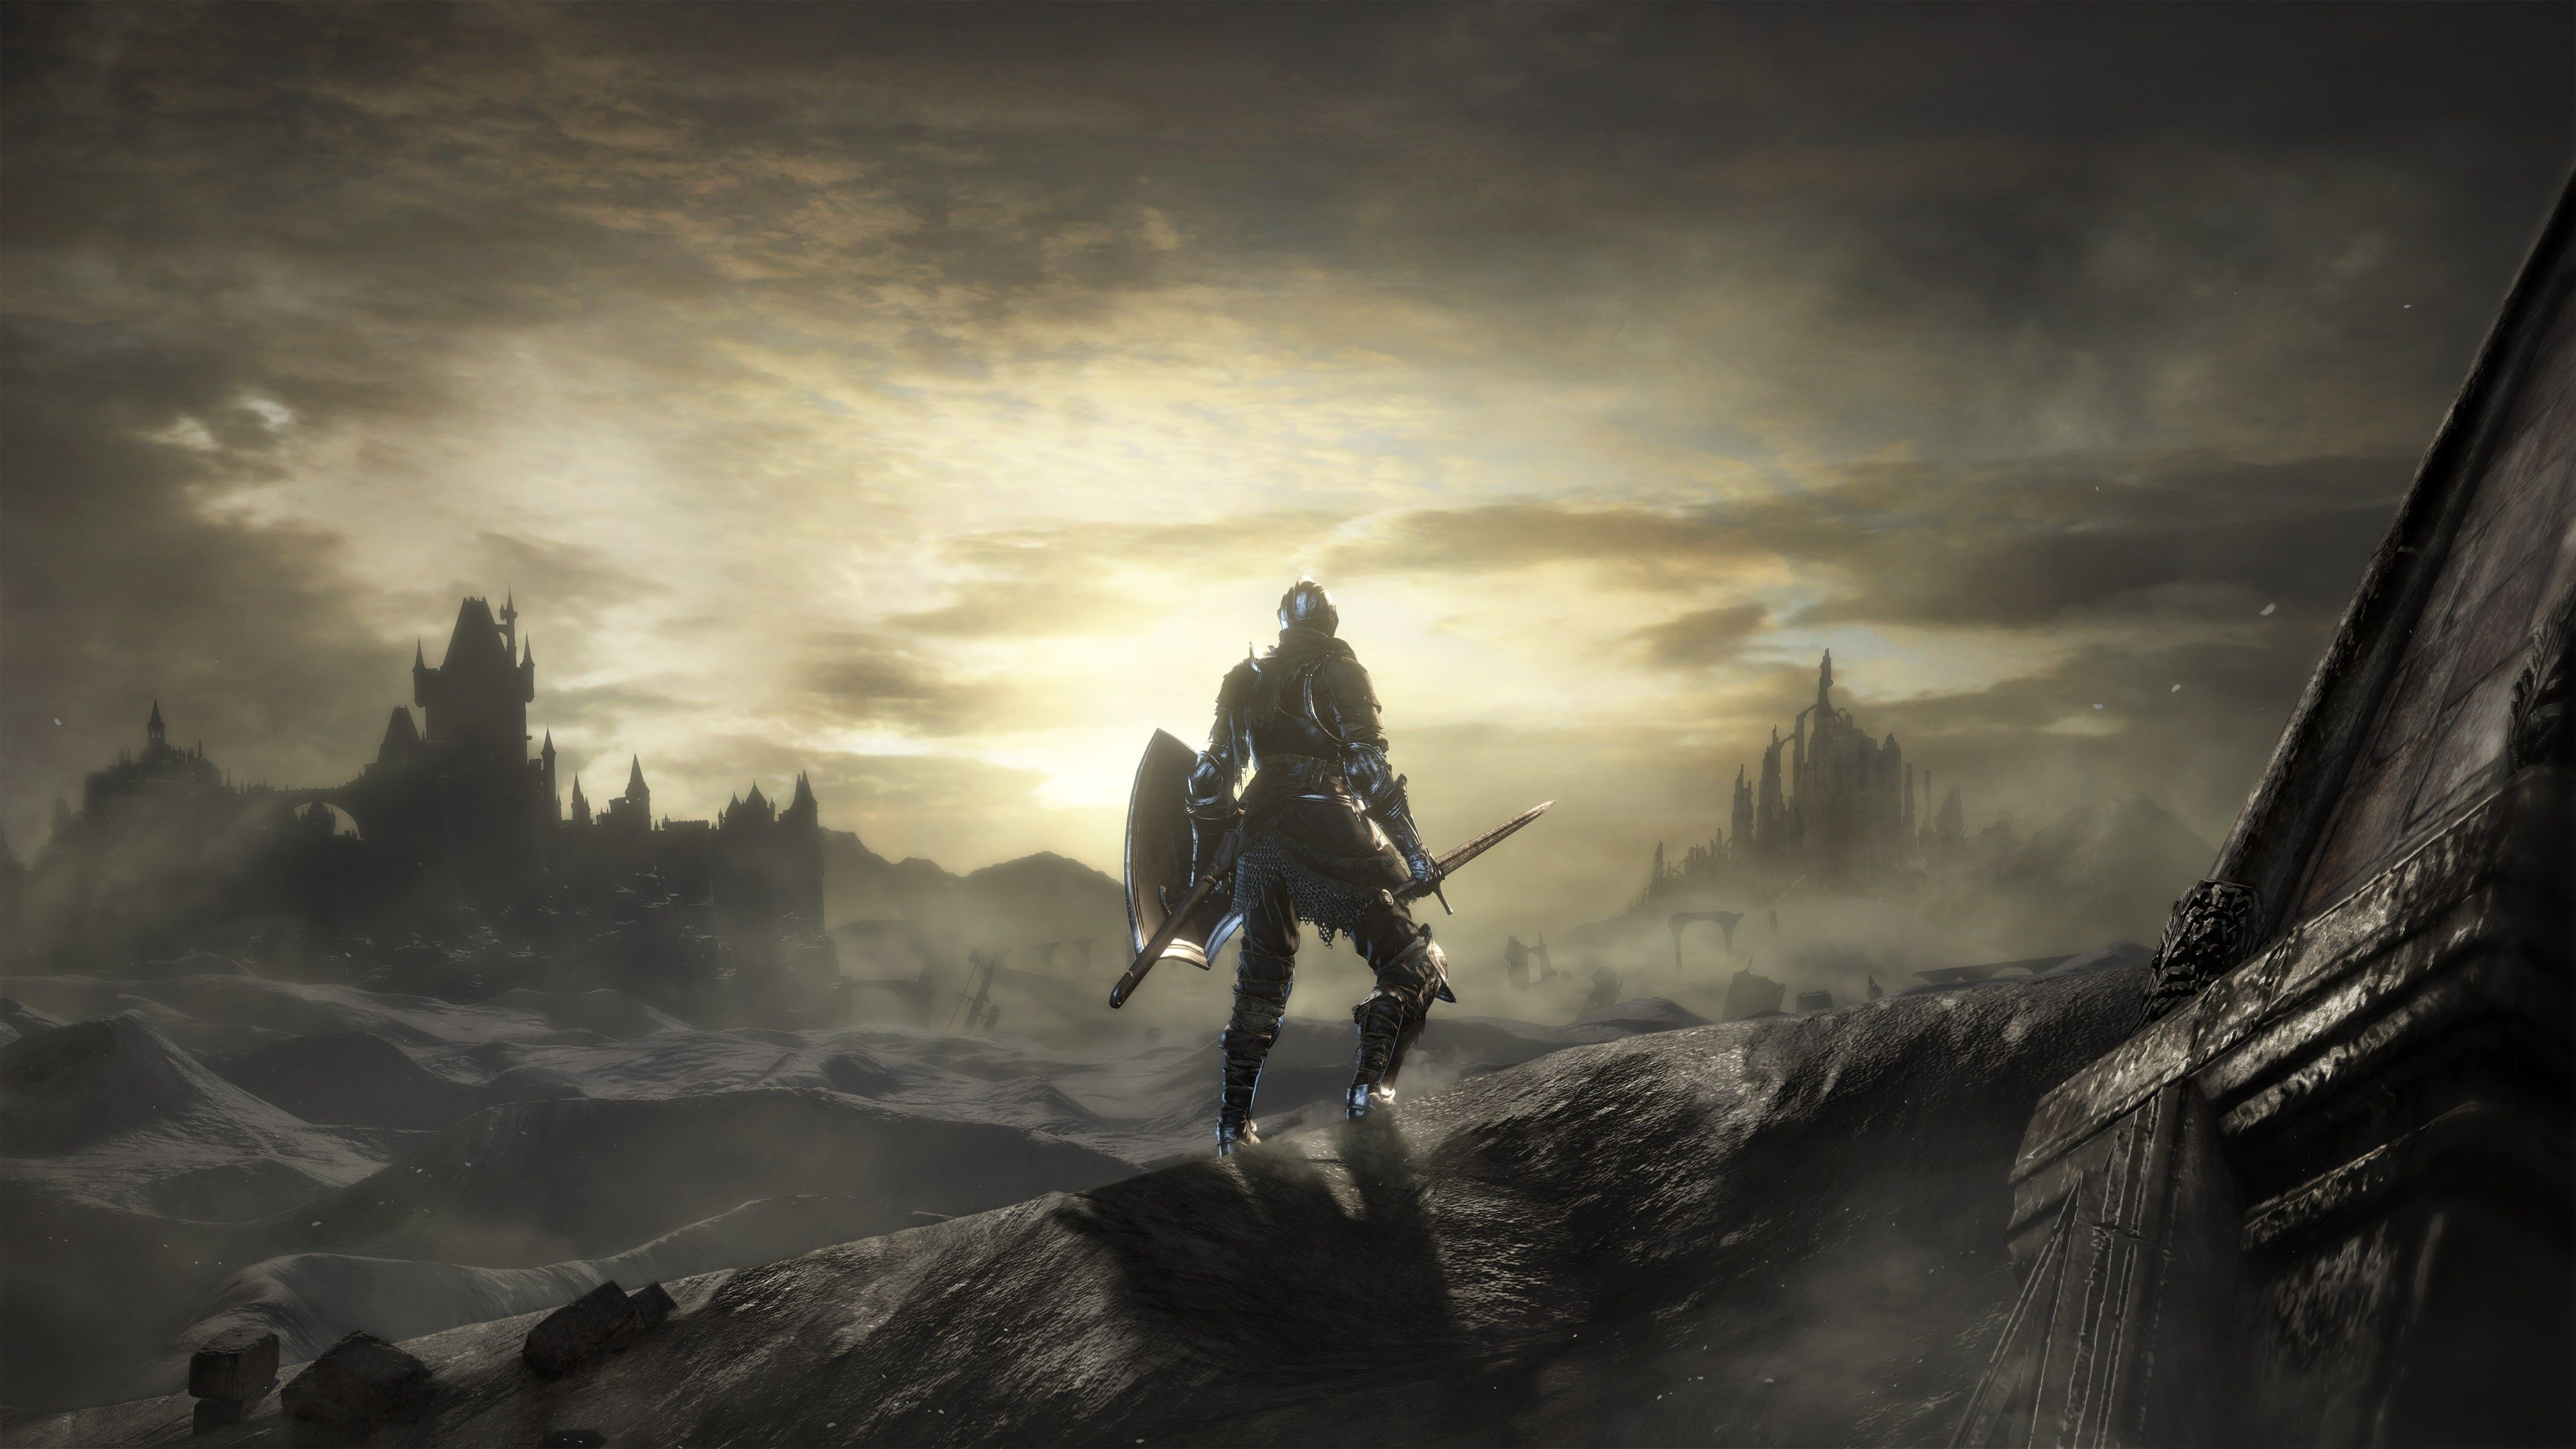 Dark Souls 3 Desktop Background: 42 Best Free 4K Dark Souls Wallpapers